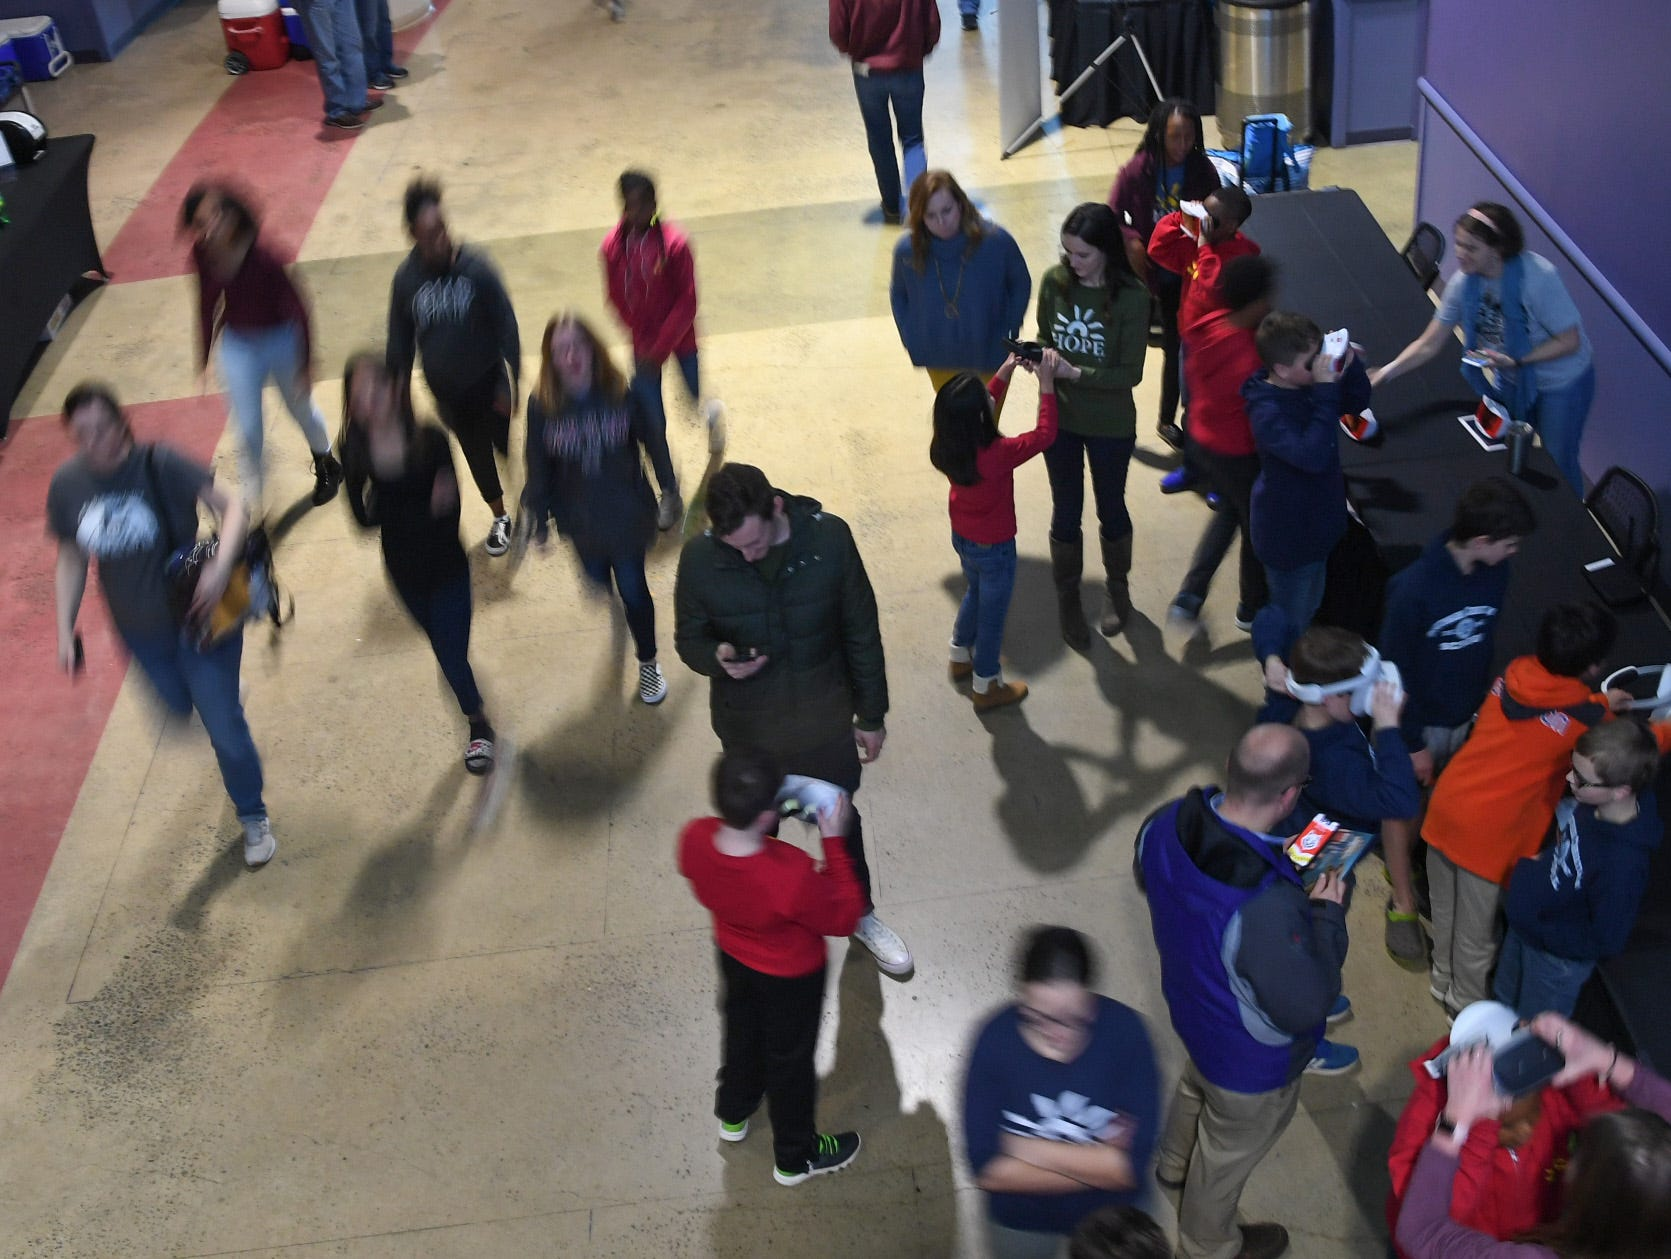 Fans arrive before the first SEC Women's basketball tournament game, Ole Miss and Florida, in Greenville Wednesday. The tournament lasts through Sunday.